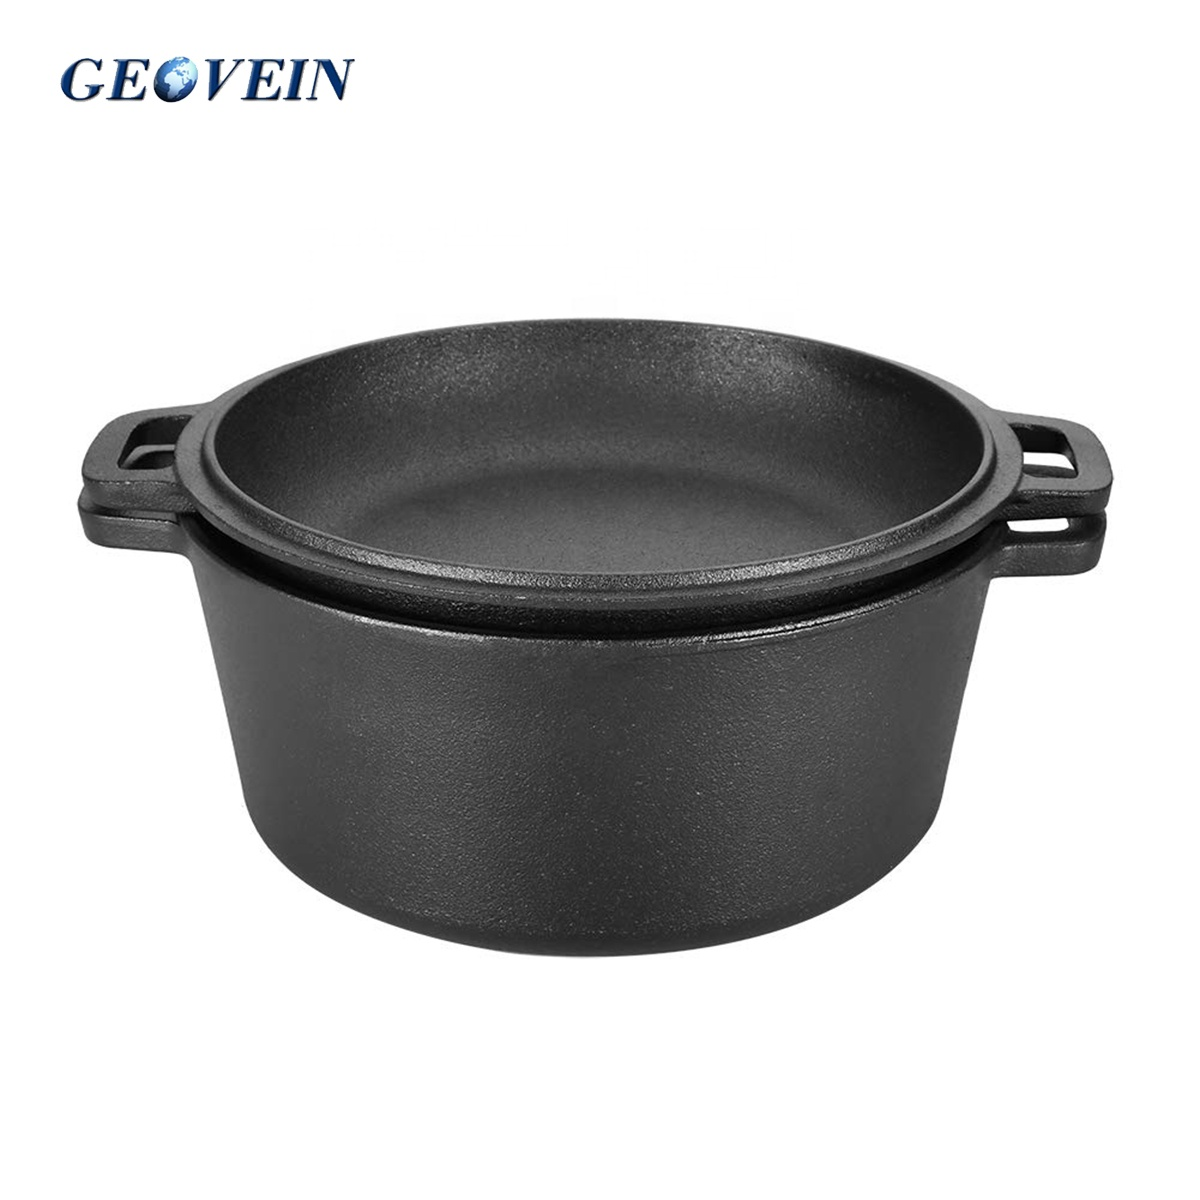 Pre-seasoned Combo Cooker 2 in 1 Cast Iron Double Dutch Oven 5-Quart With Domed Skillet Lid